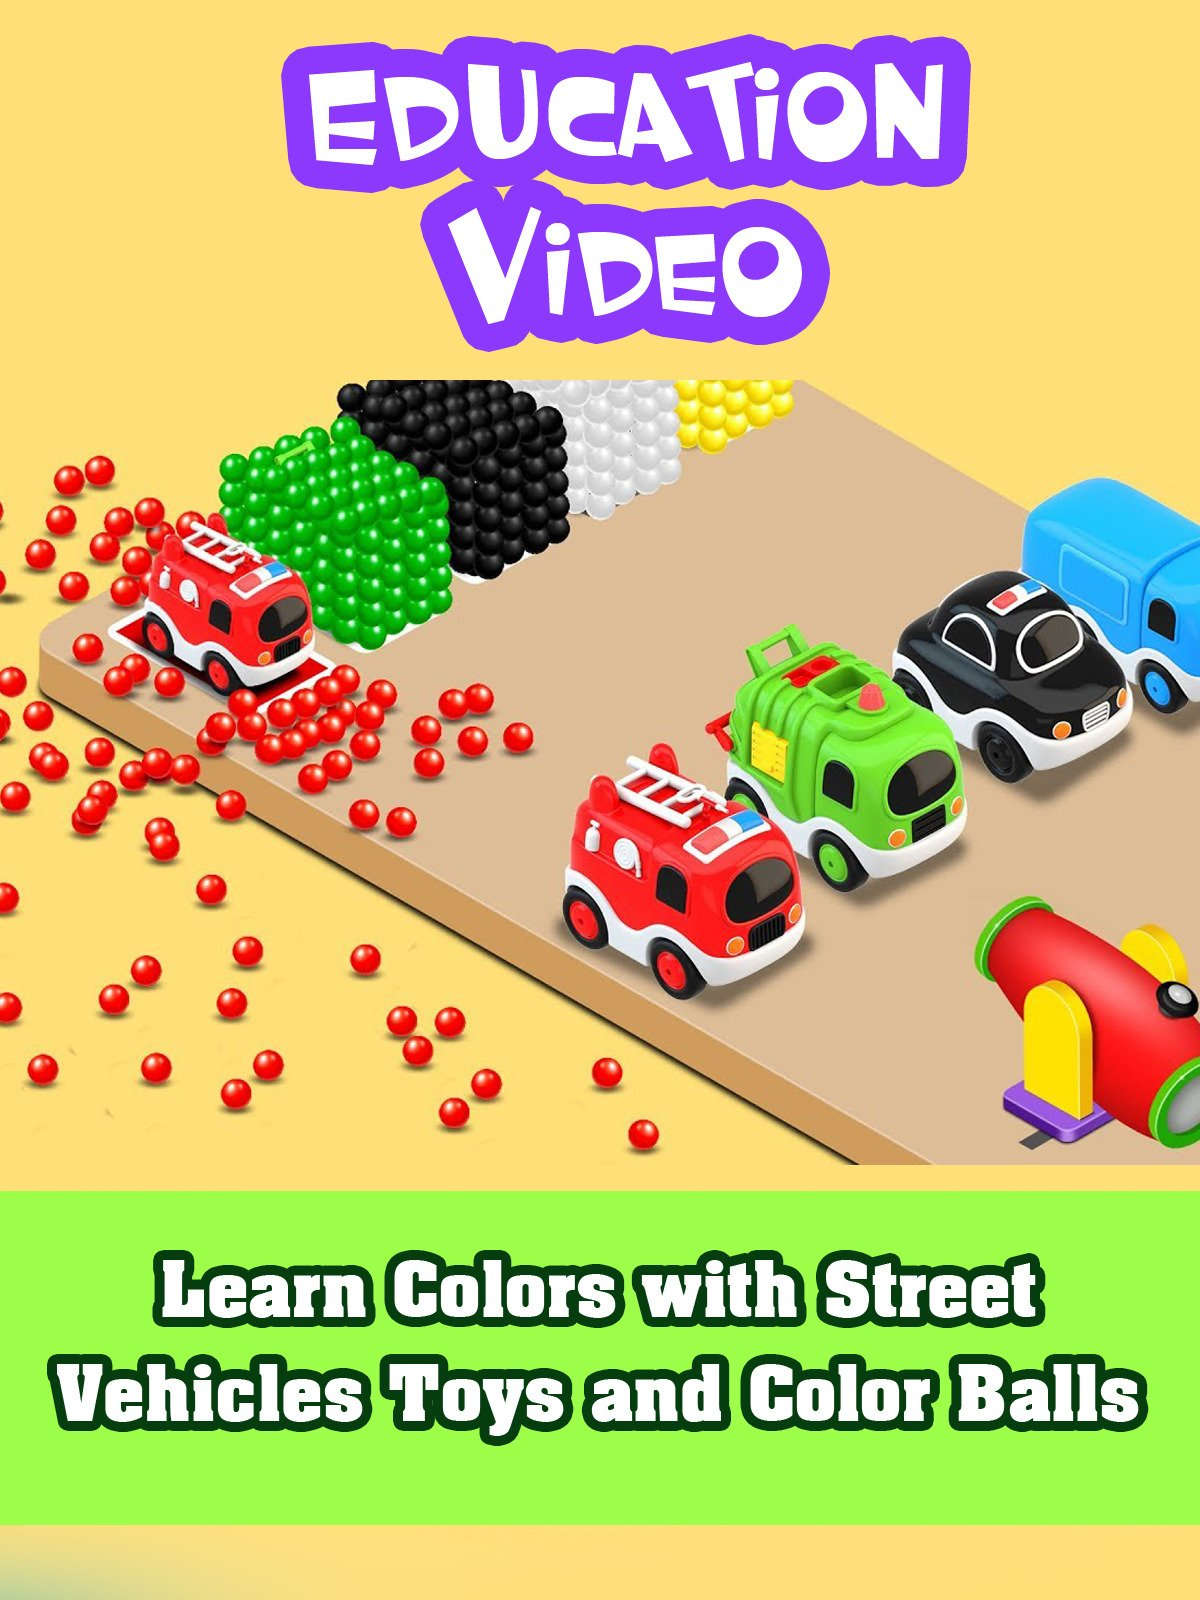 Learn Colors with Street Vehicles Toys and Color Balls